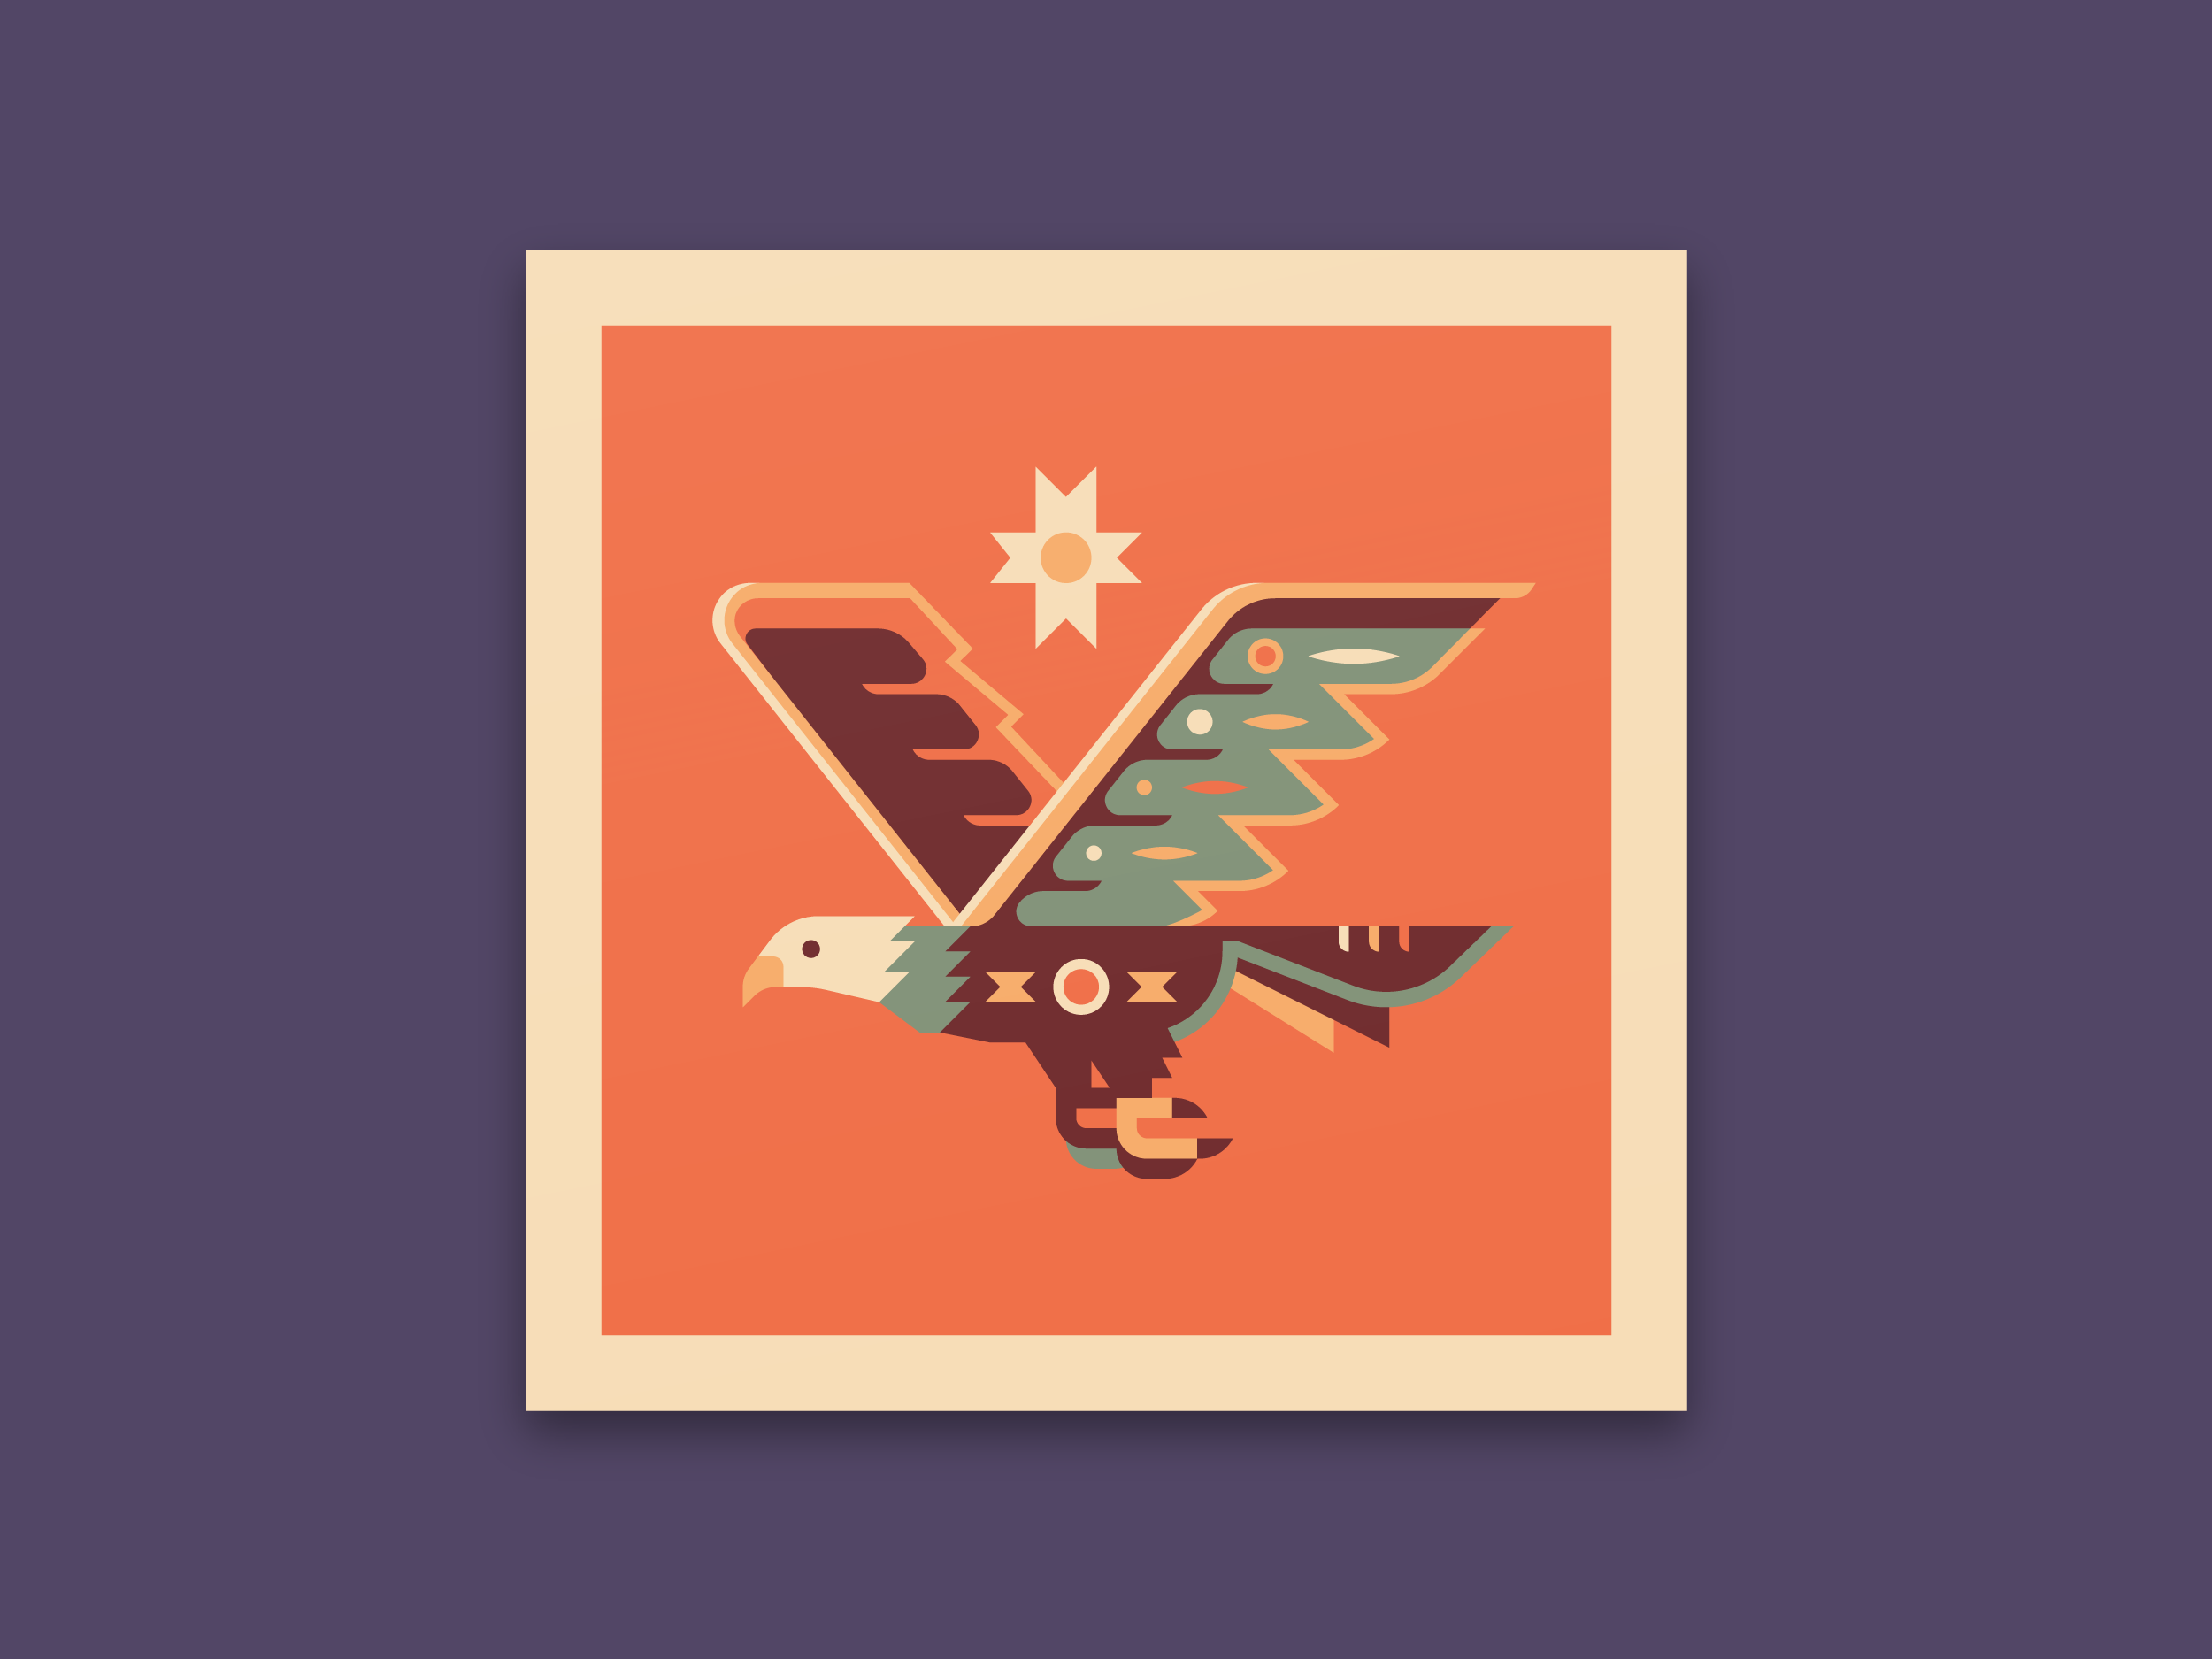 Eagle - Totems print series by Canopy Design and Illustration